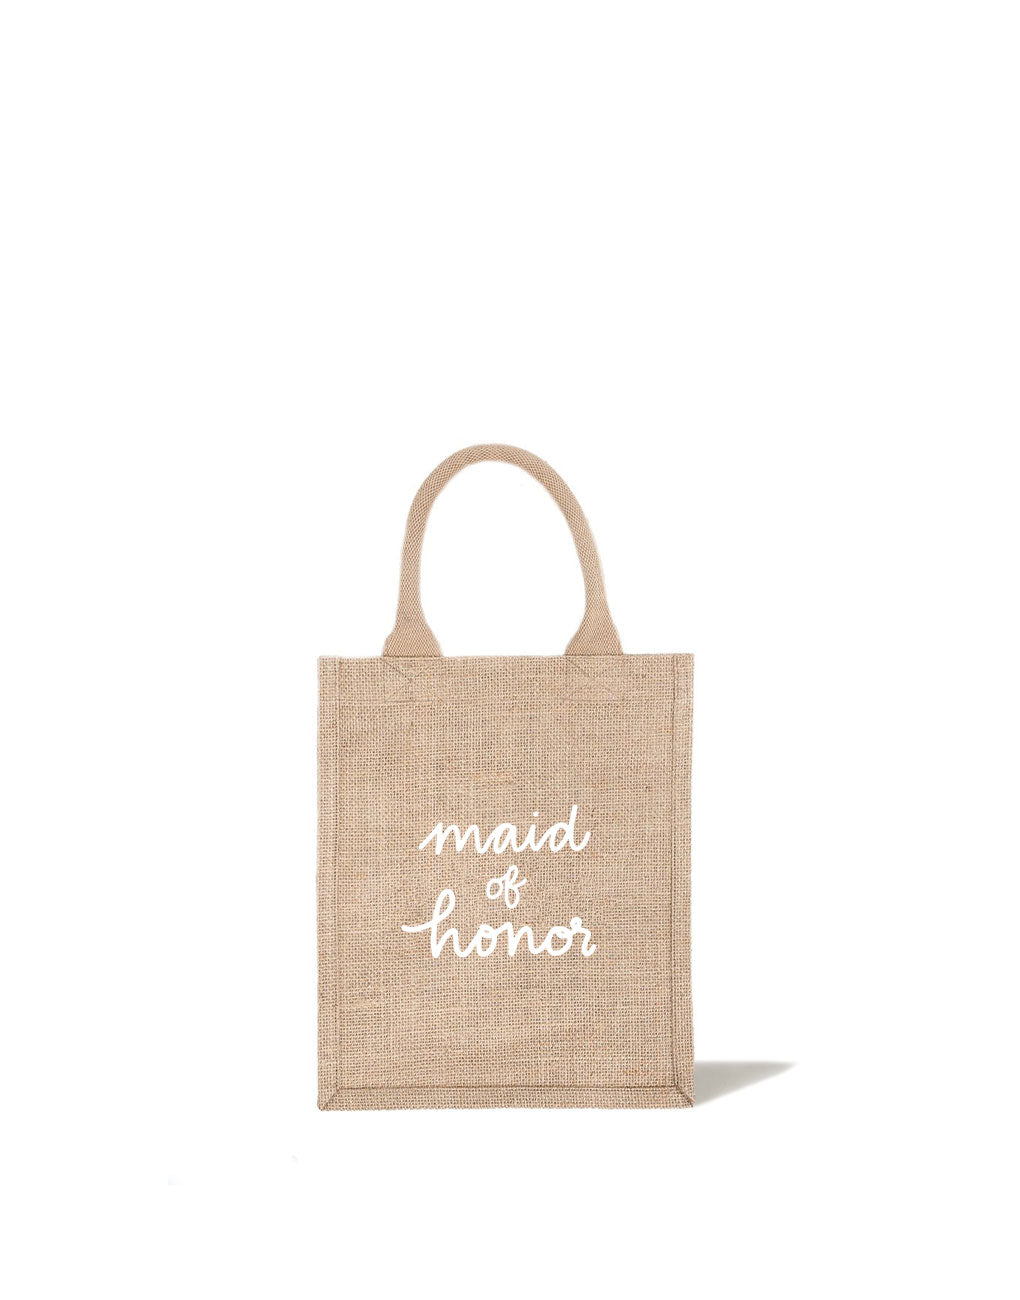 Medium Maid Of Honor Reusable Gift Tote In White Font | The Little Market